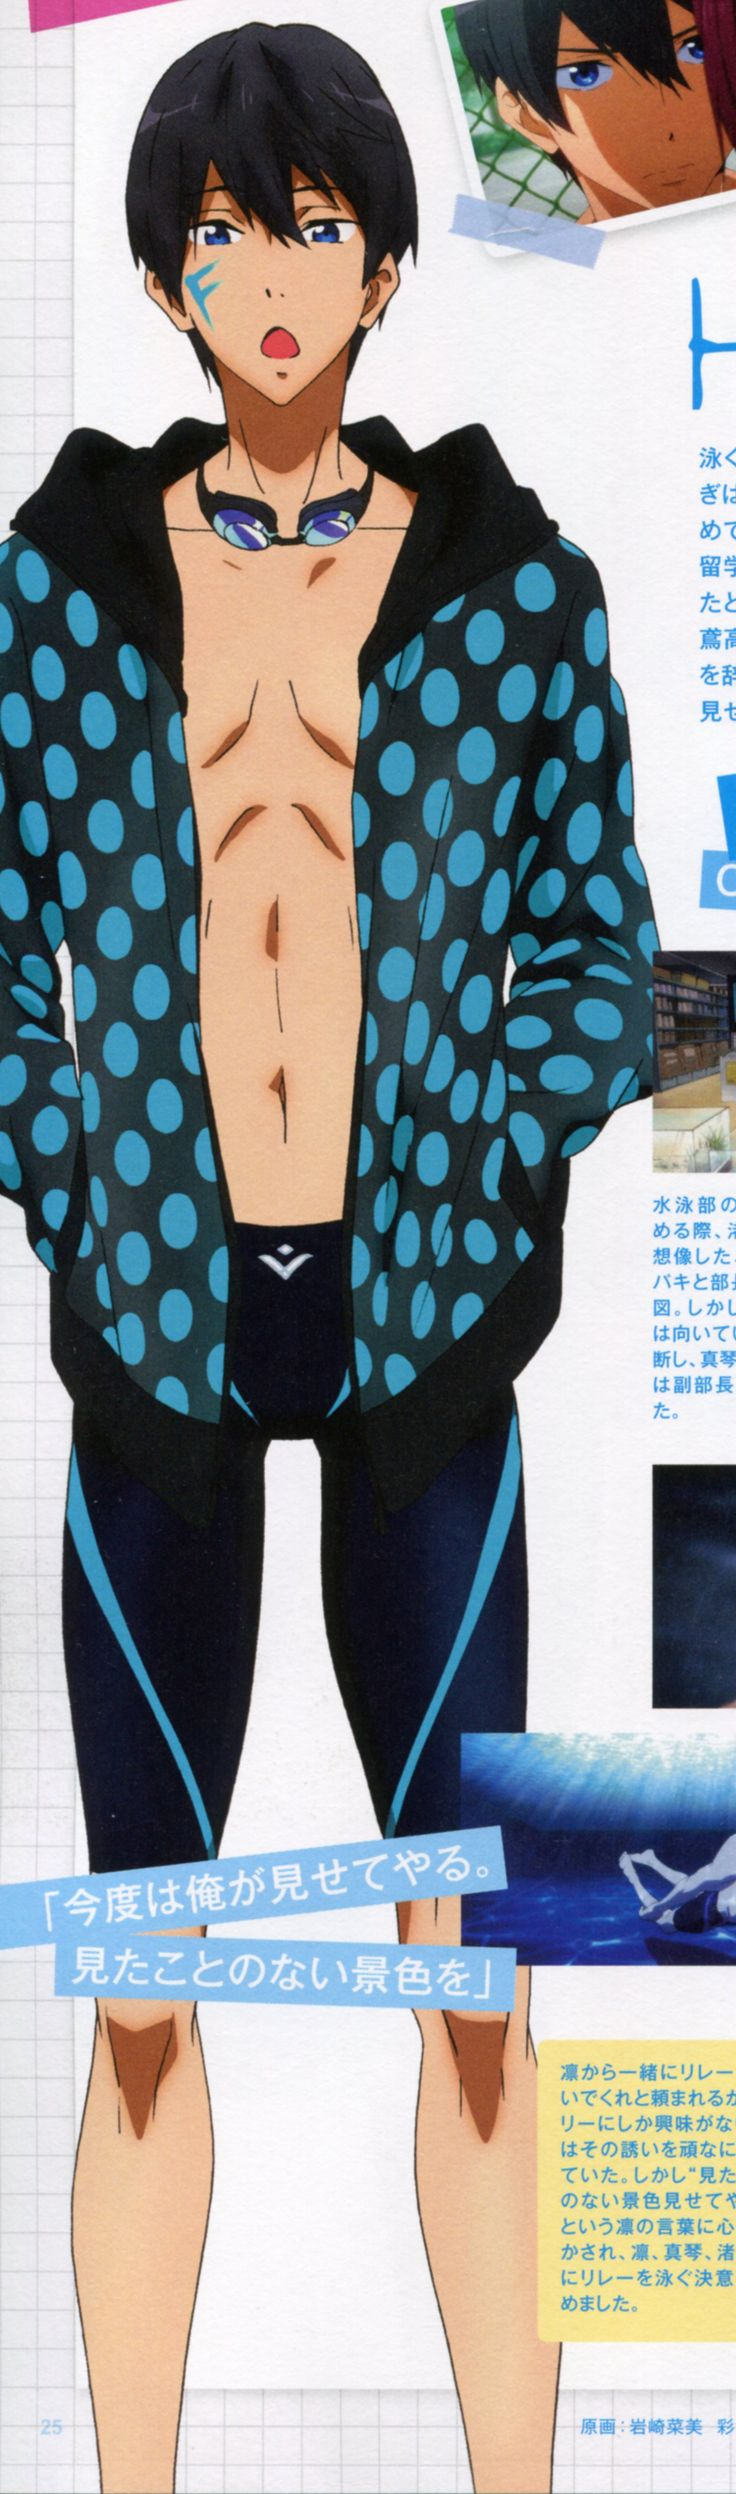 Free! ~~ Haruka ::  If they line up properly, they spell the name of the show!